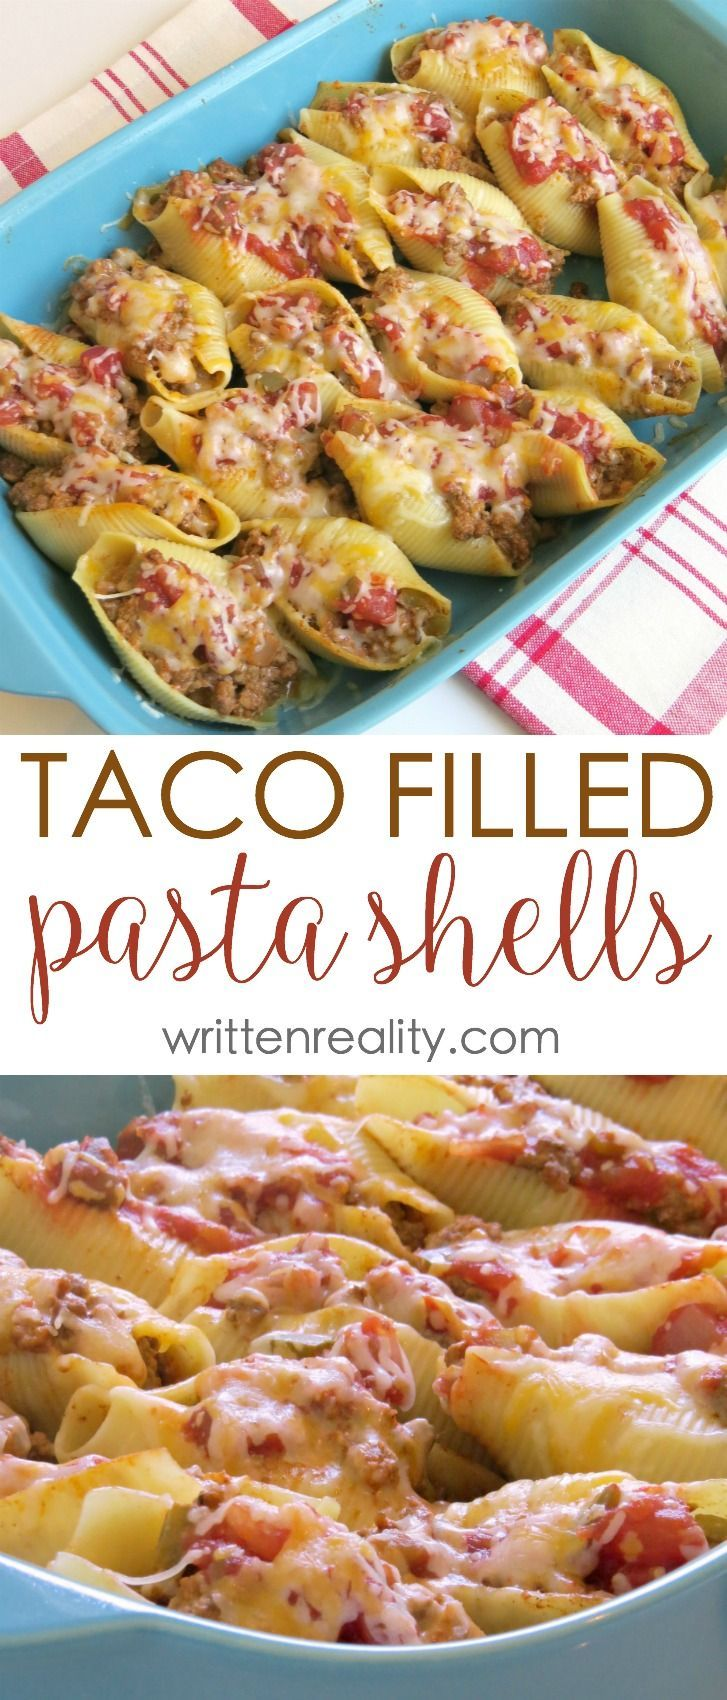 Taco Filled Pasta Shells Recipe  This recipe for taco filled pasta shells is an easy one. It's the perfect meal idea for busy weeknights that the whole family will love.